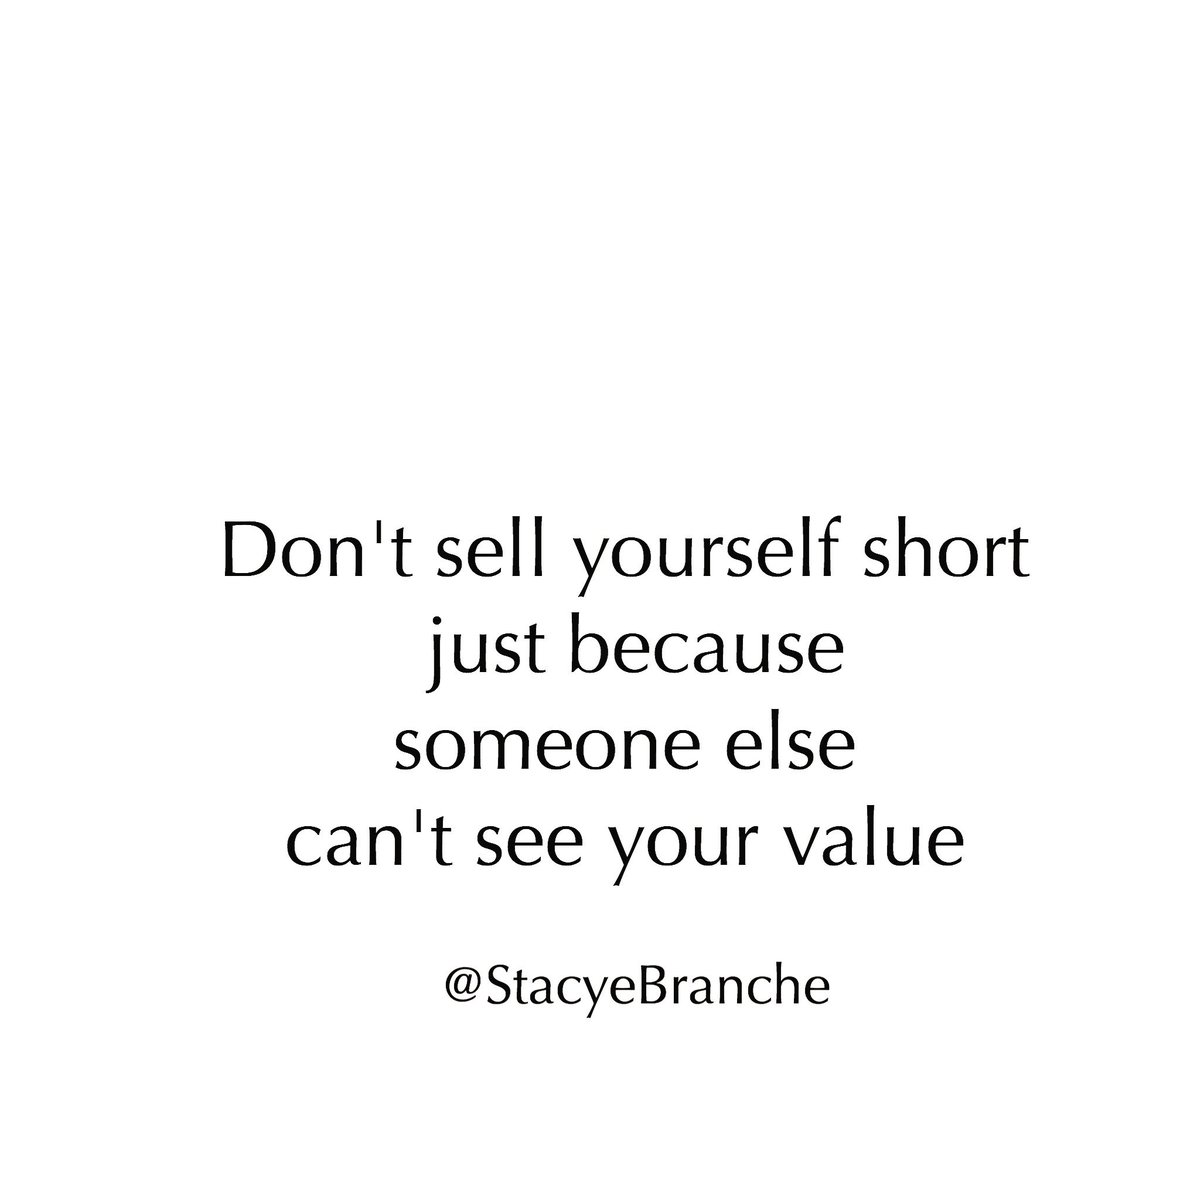 You should never allow someone who cant see your value or appreciate your contribution to make you feel inadequate.    #stacyemorsel  #quotes  #quote  #quoteoftheday  #motivationalquotes  #wordsofwisdom  #wordstoliveby  #holistichealthhealth  #wellness  #wellnessblog